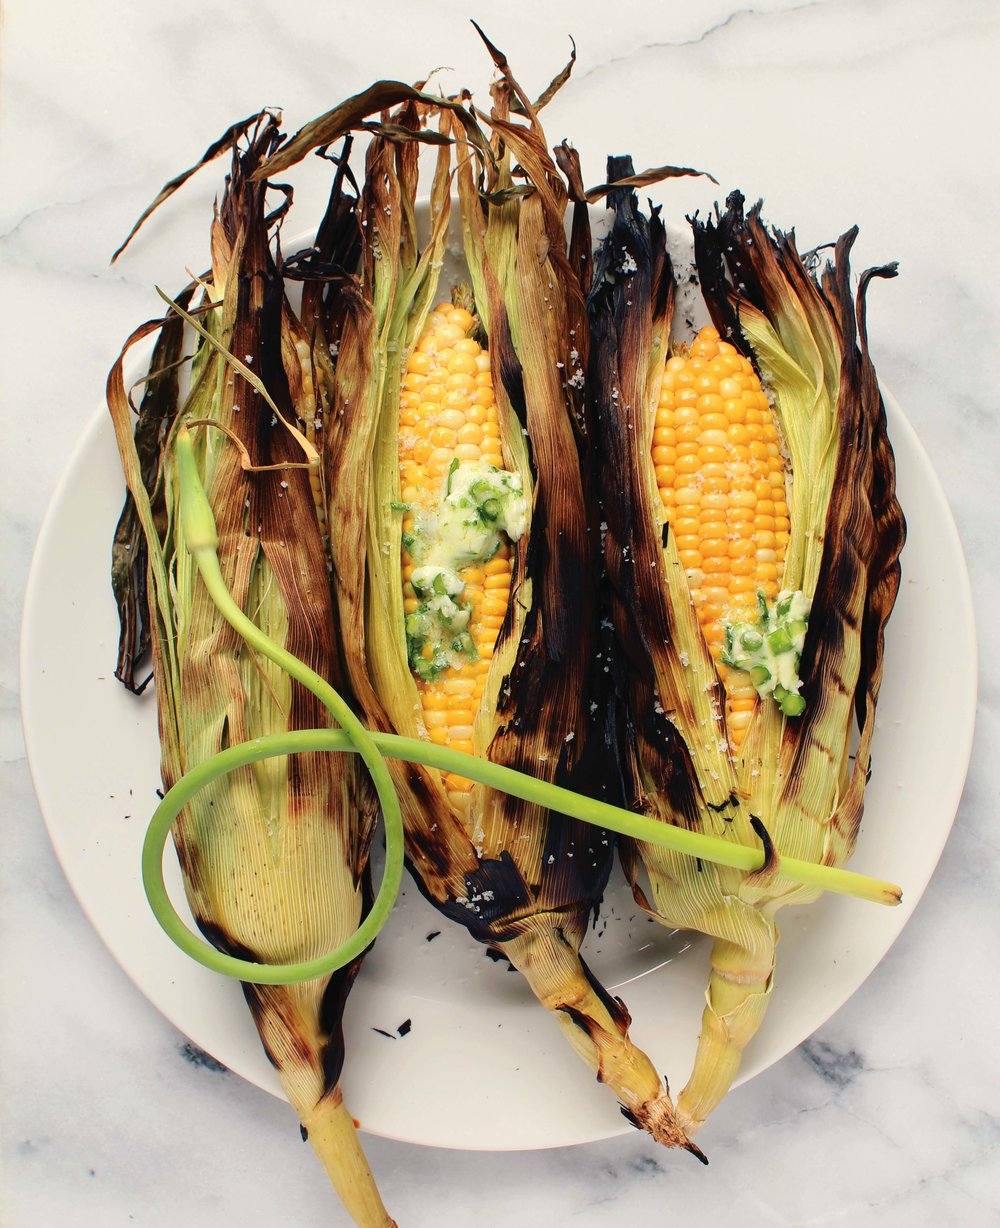 Grilled Corn on the Cob - lowres.jpg